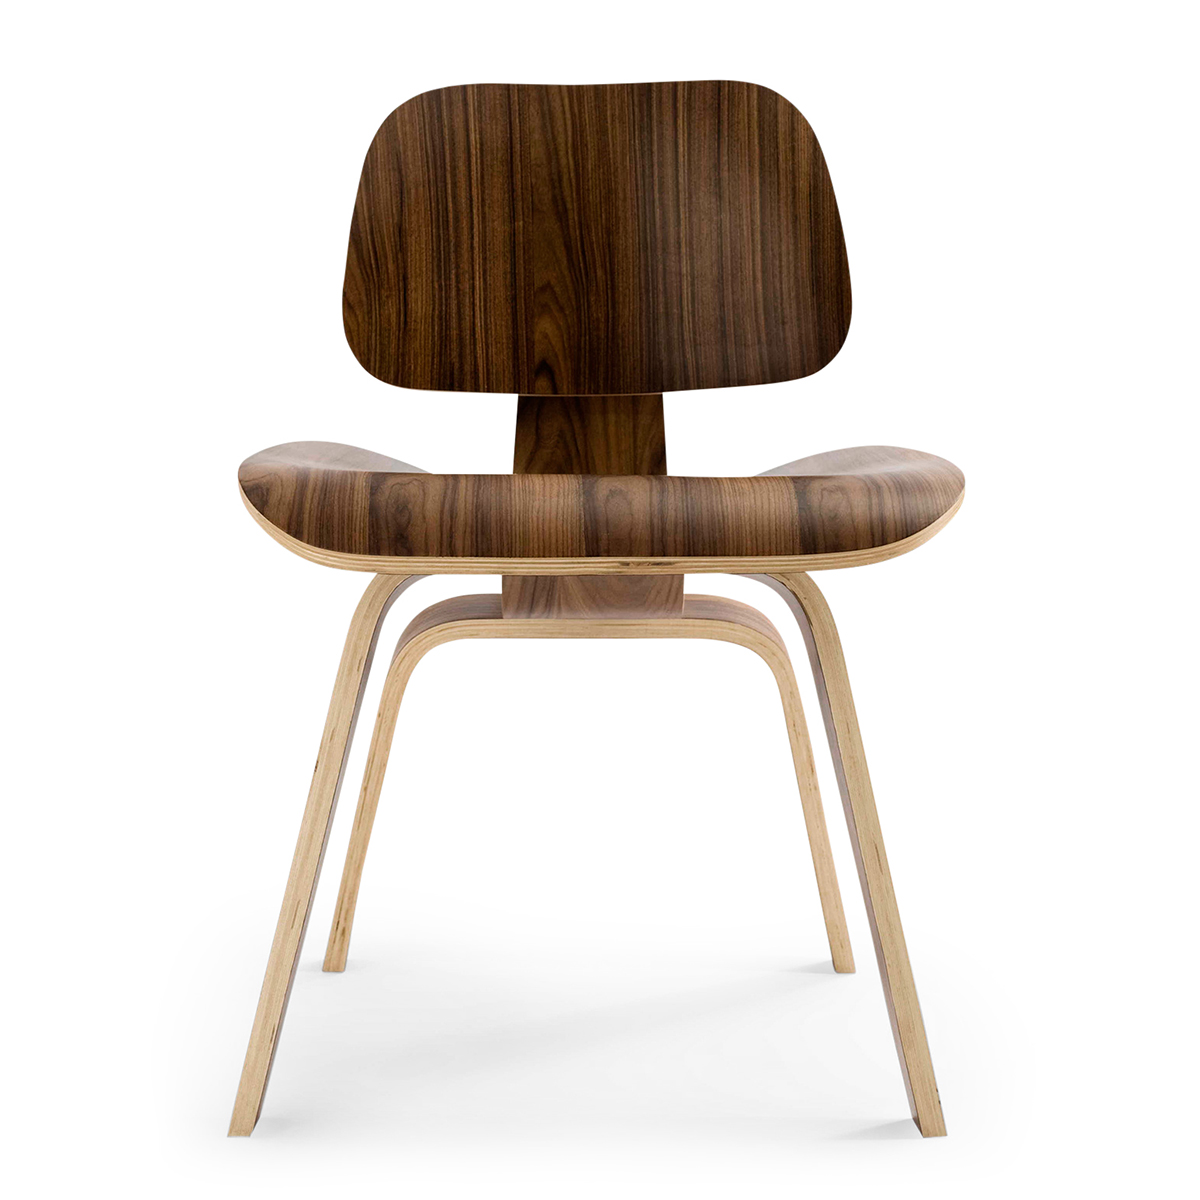 Plywood Dining Chair With Wood Legs